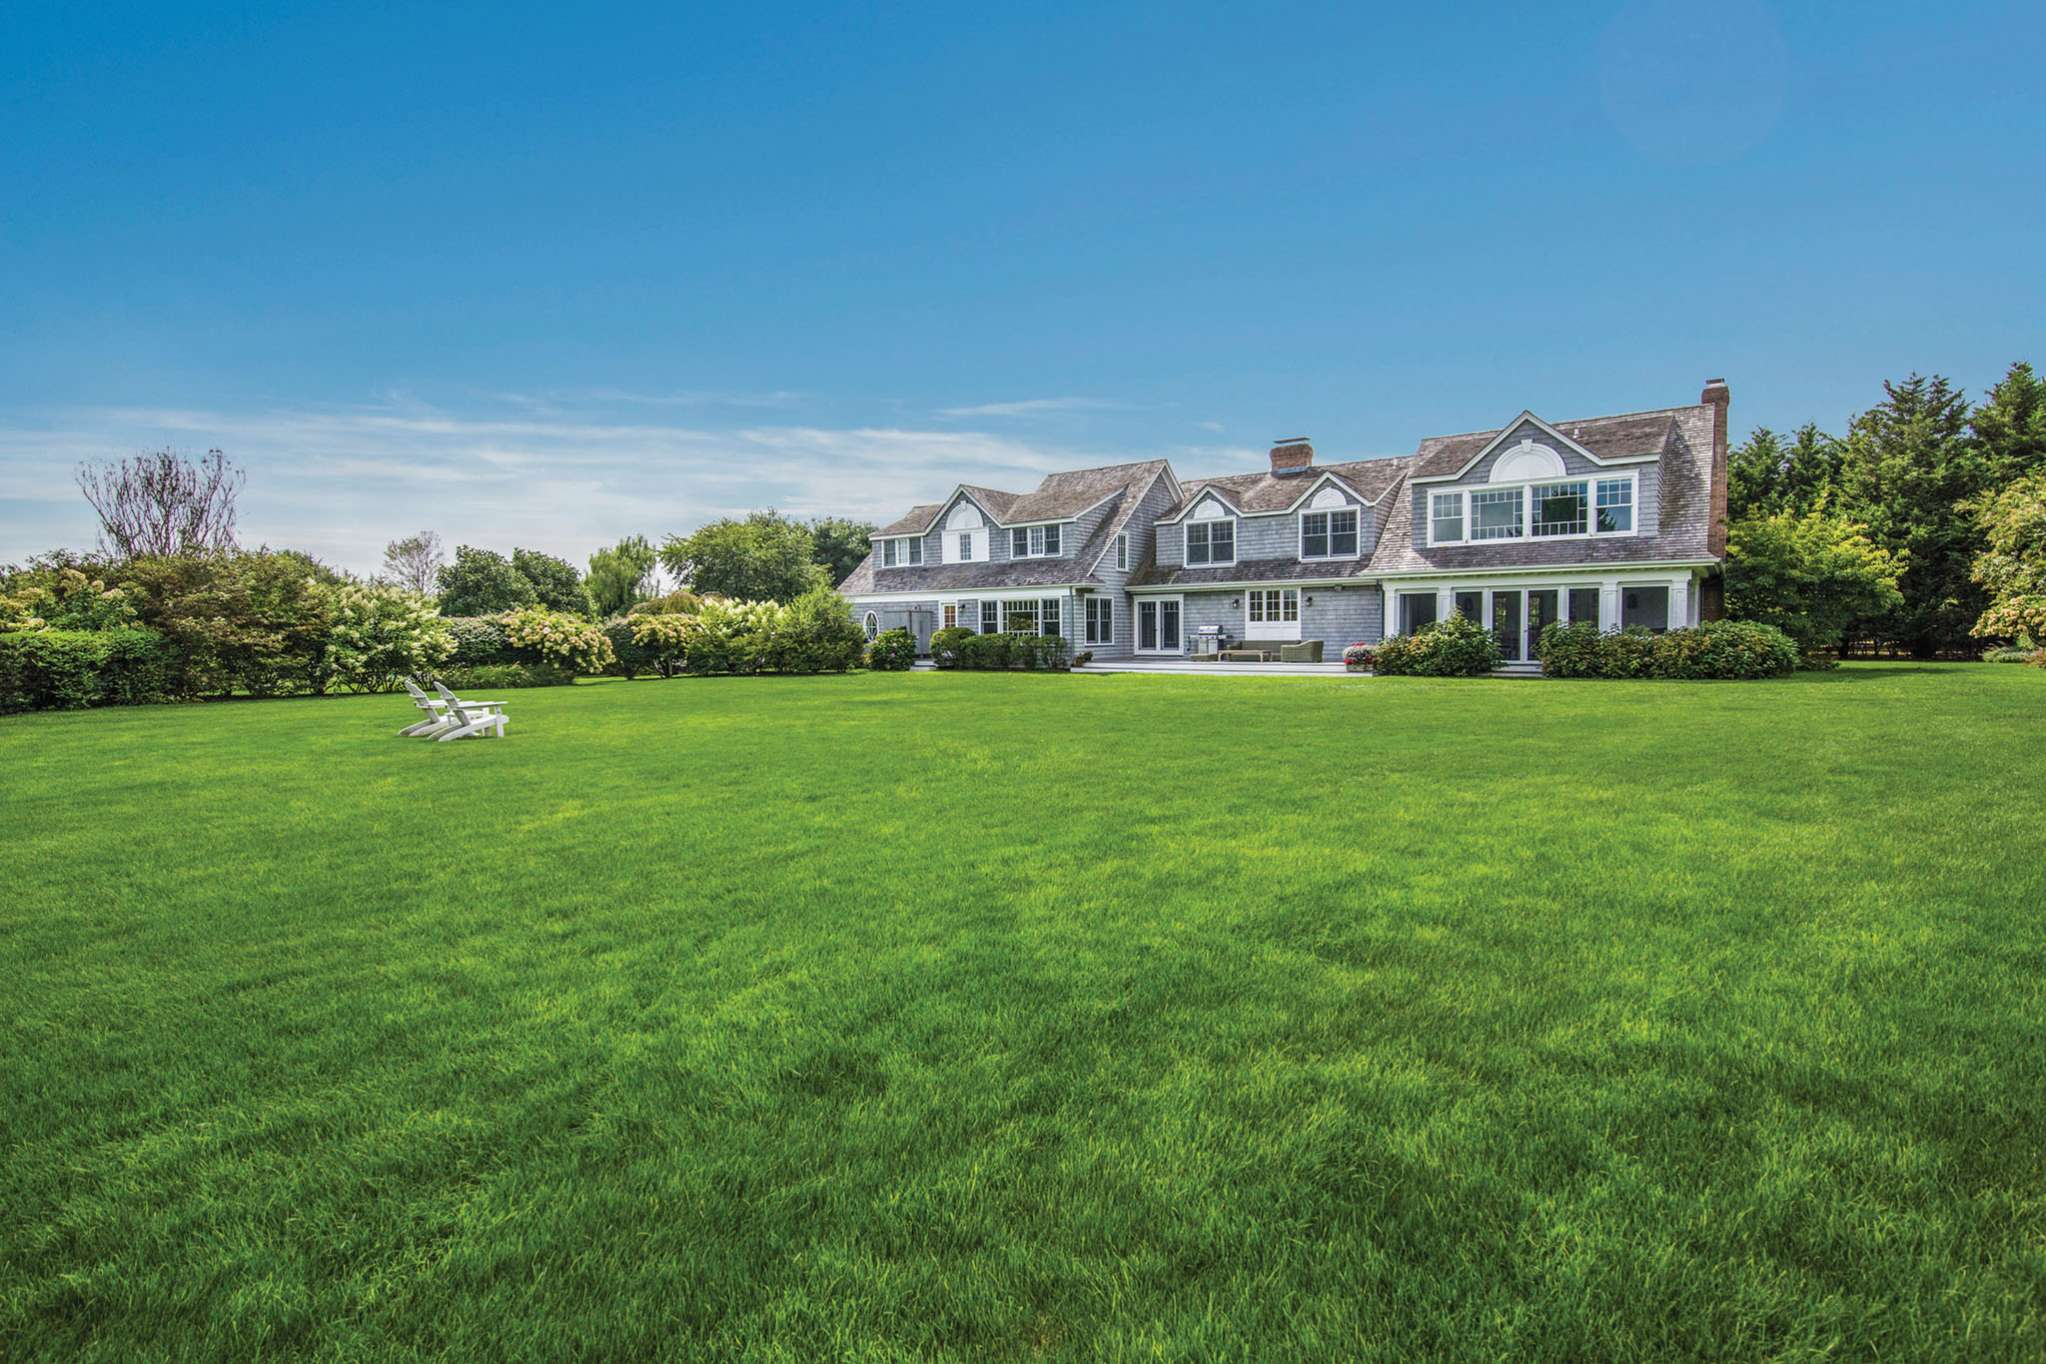 Single Family Home for Sale at Secluded Serenity On Butter Lane Bridgehampton, New York